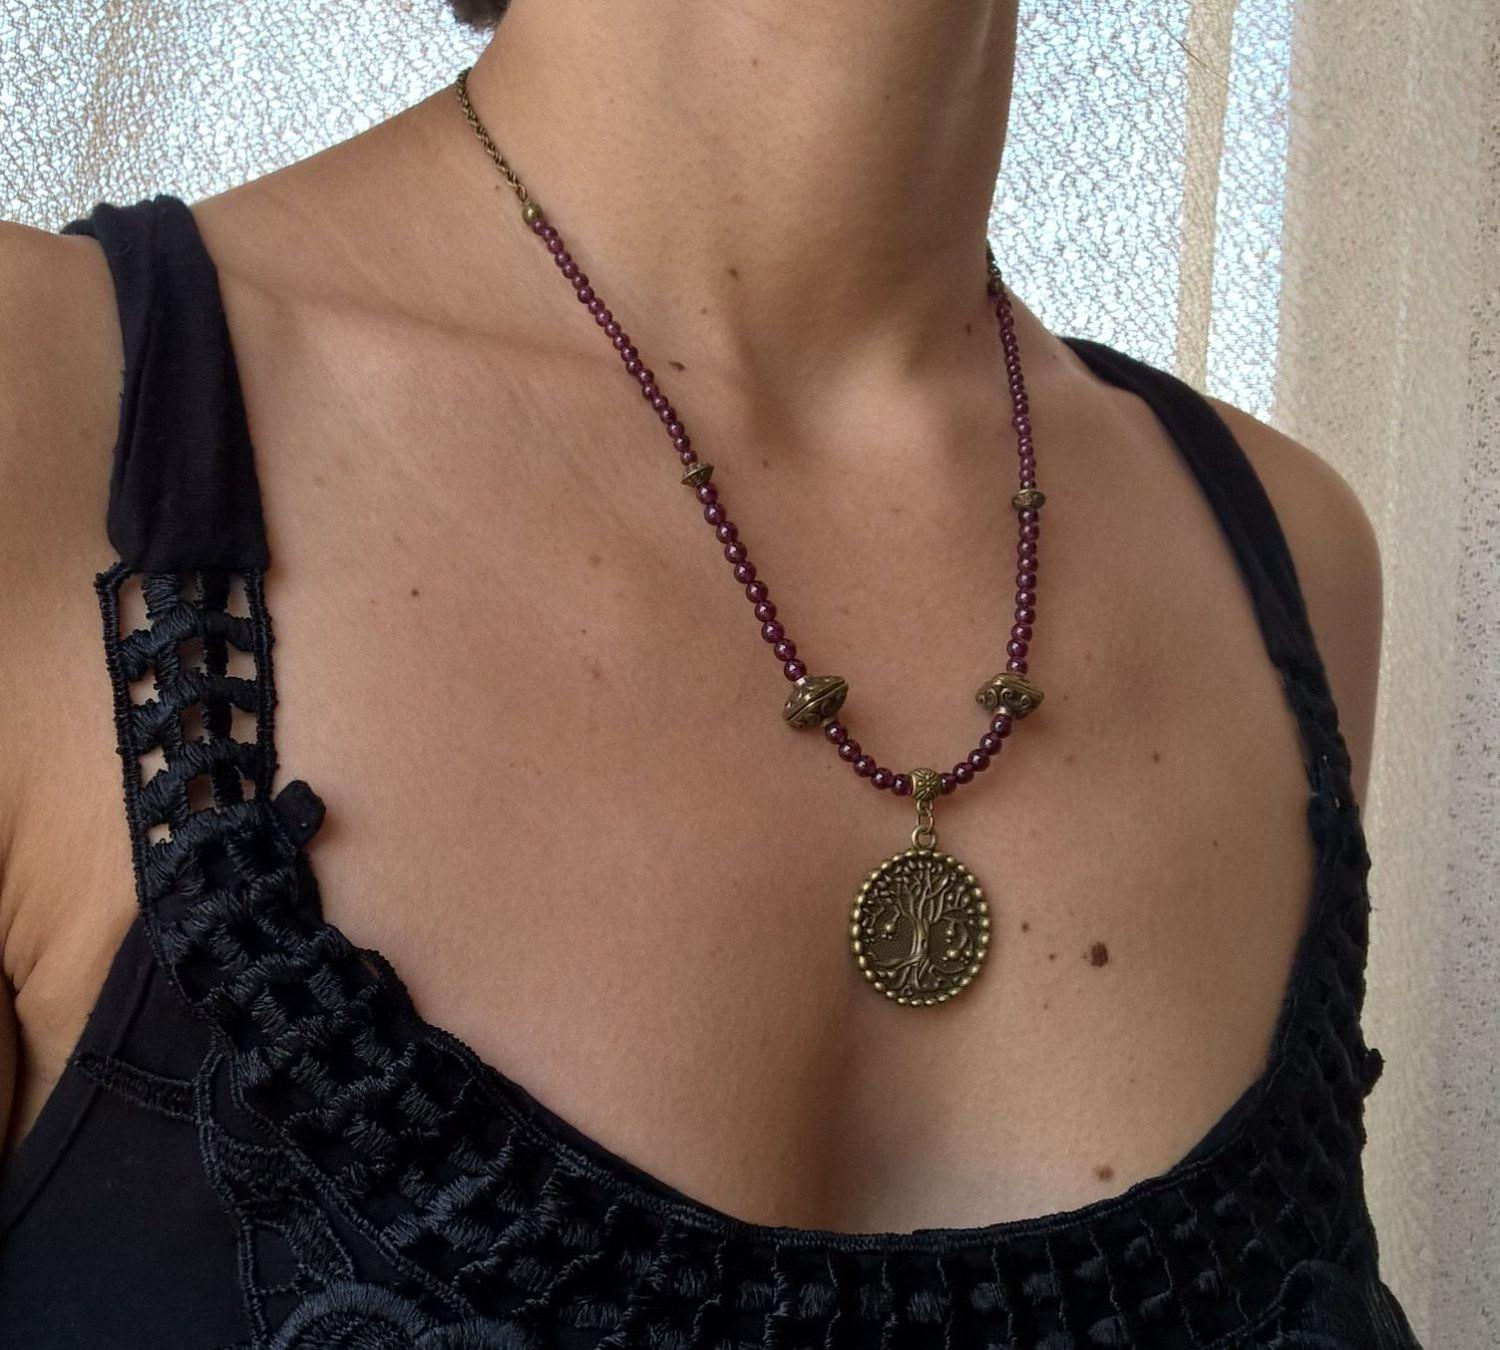 Garnet Mala necklace woman, tree of life stone necklace, bohemain necklace womens jewelry | Healing stone Handmade Jewelry by AnuanA Craft